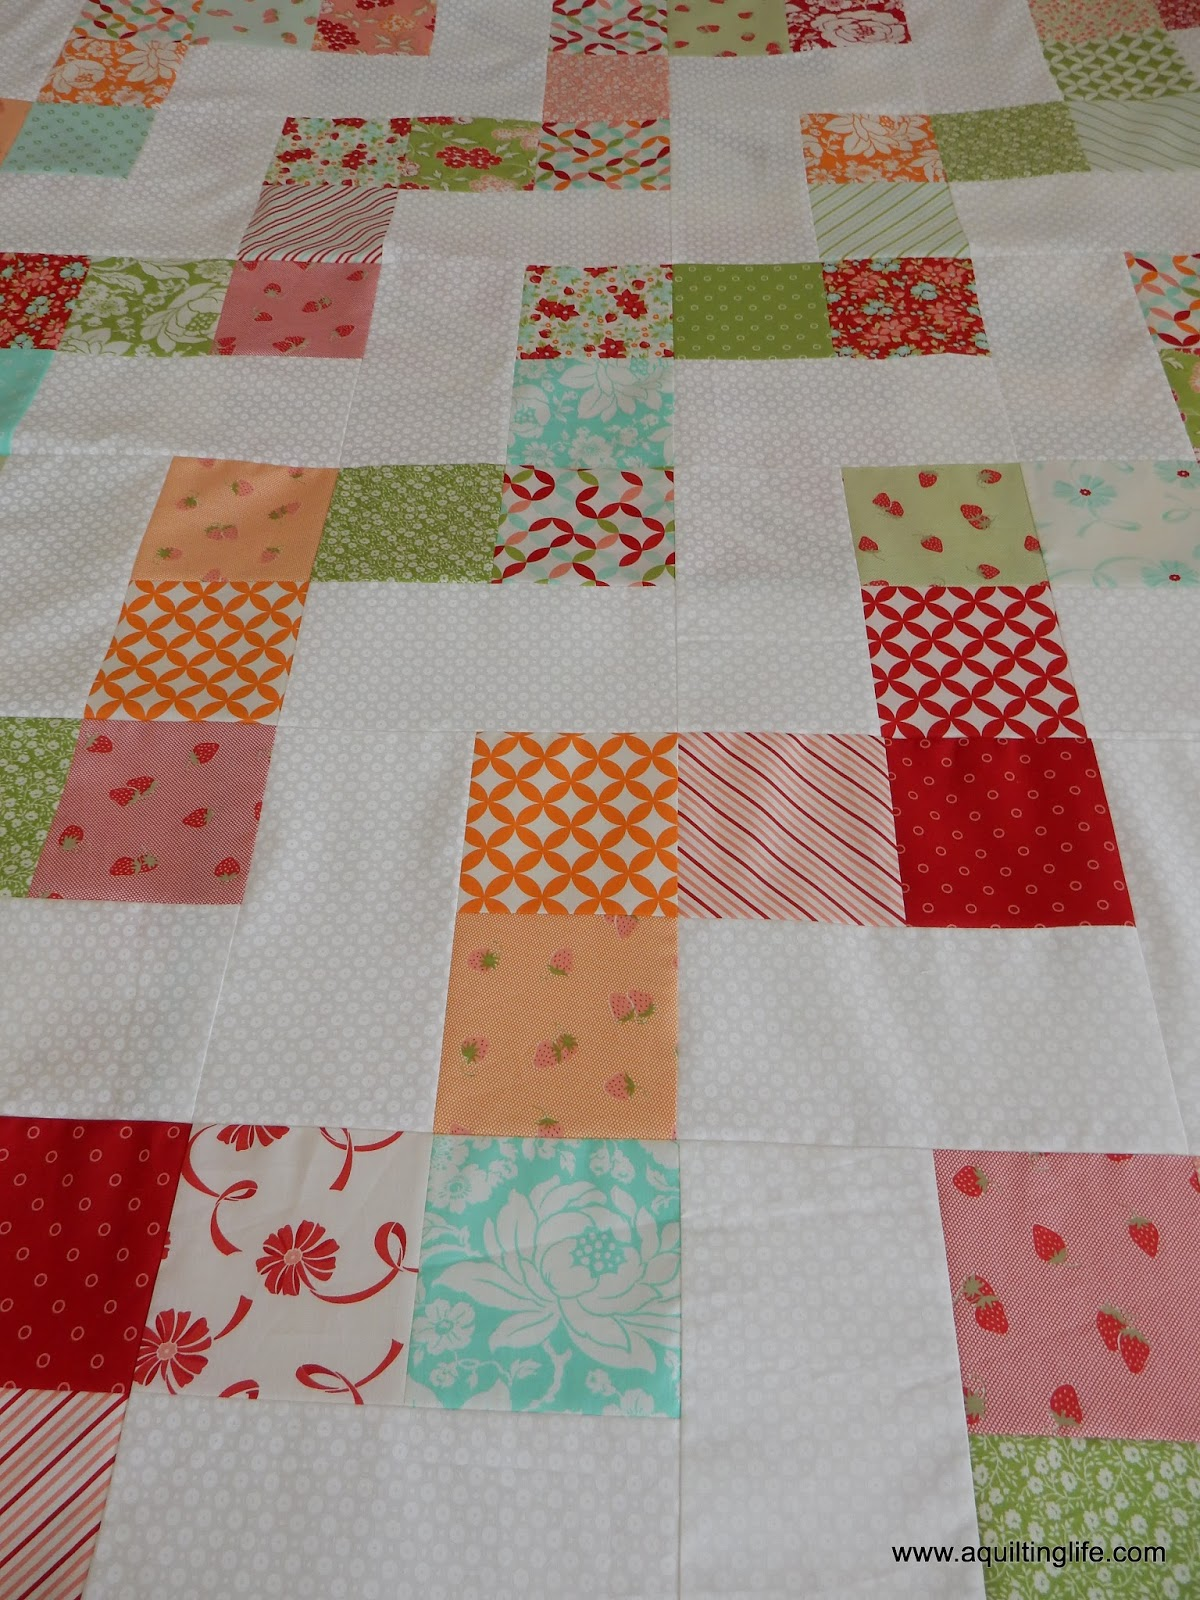 Simple Quilts Templates Quilt Kit : Simple Quilts: No Bake Jolly Bar Pattern A Quilting Life - a quilt blog